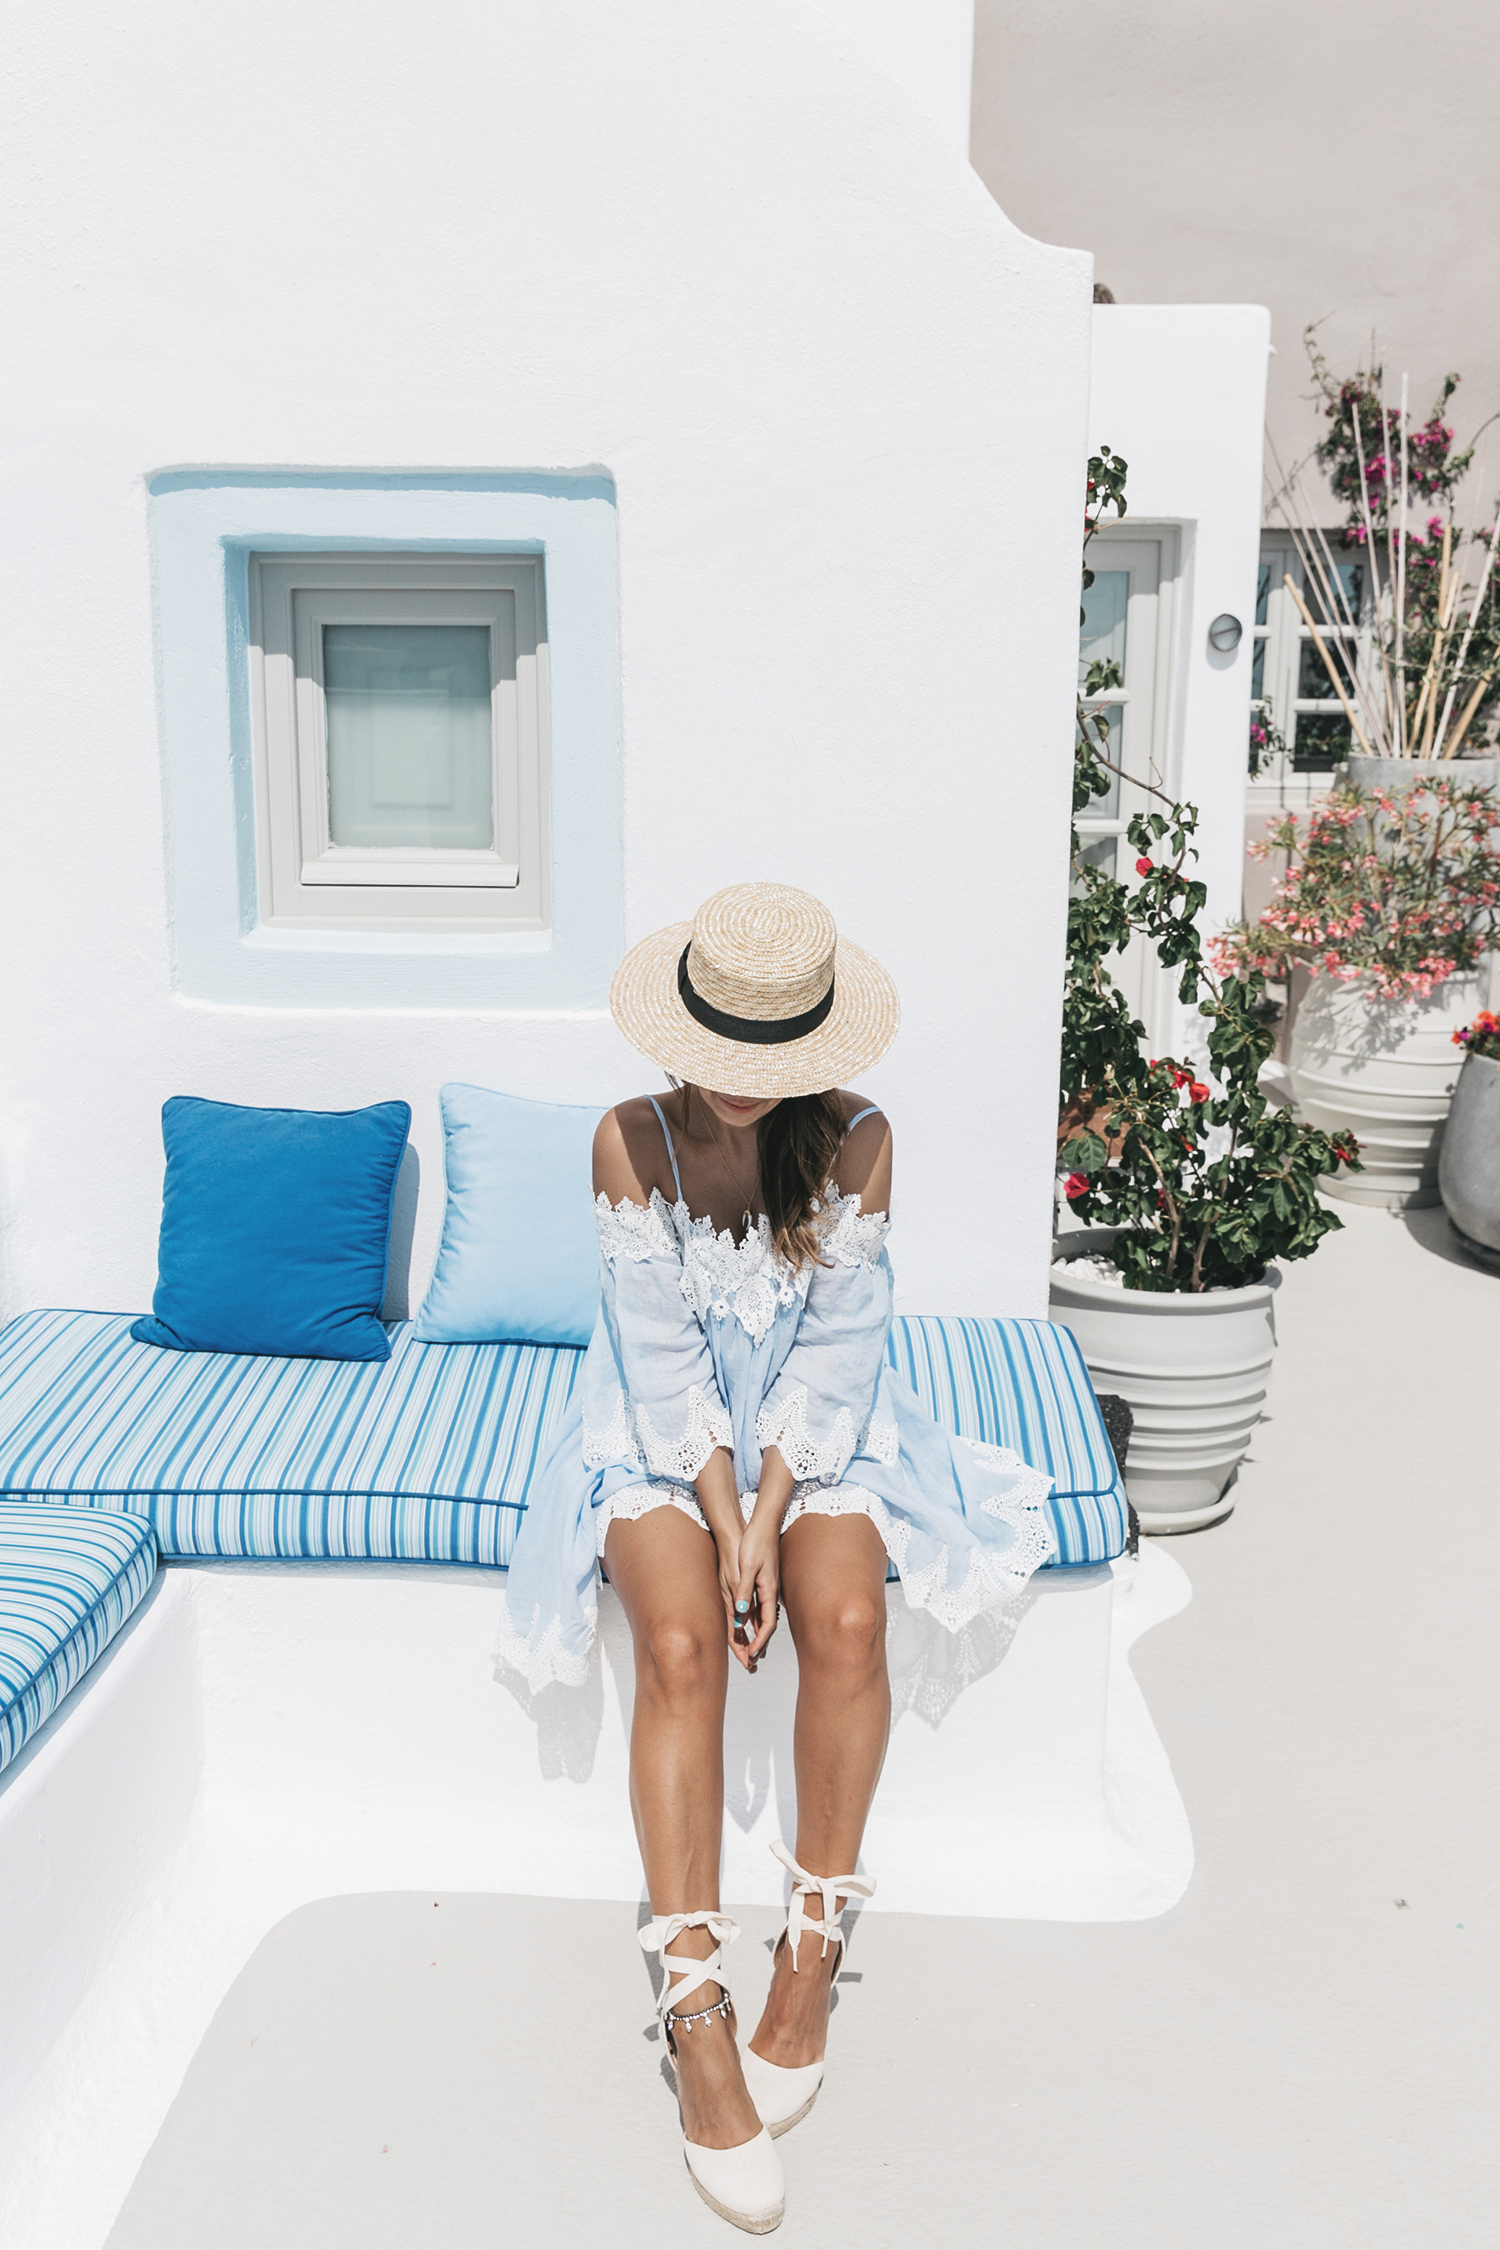 Blue_Dress-Soludos_Escapes-Soludos_Espadrilles-Canotier-Hat-Lack_Of_Color-Summer-Santorini-Collage_Vintage-83